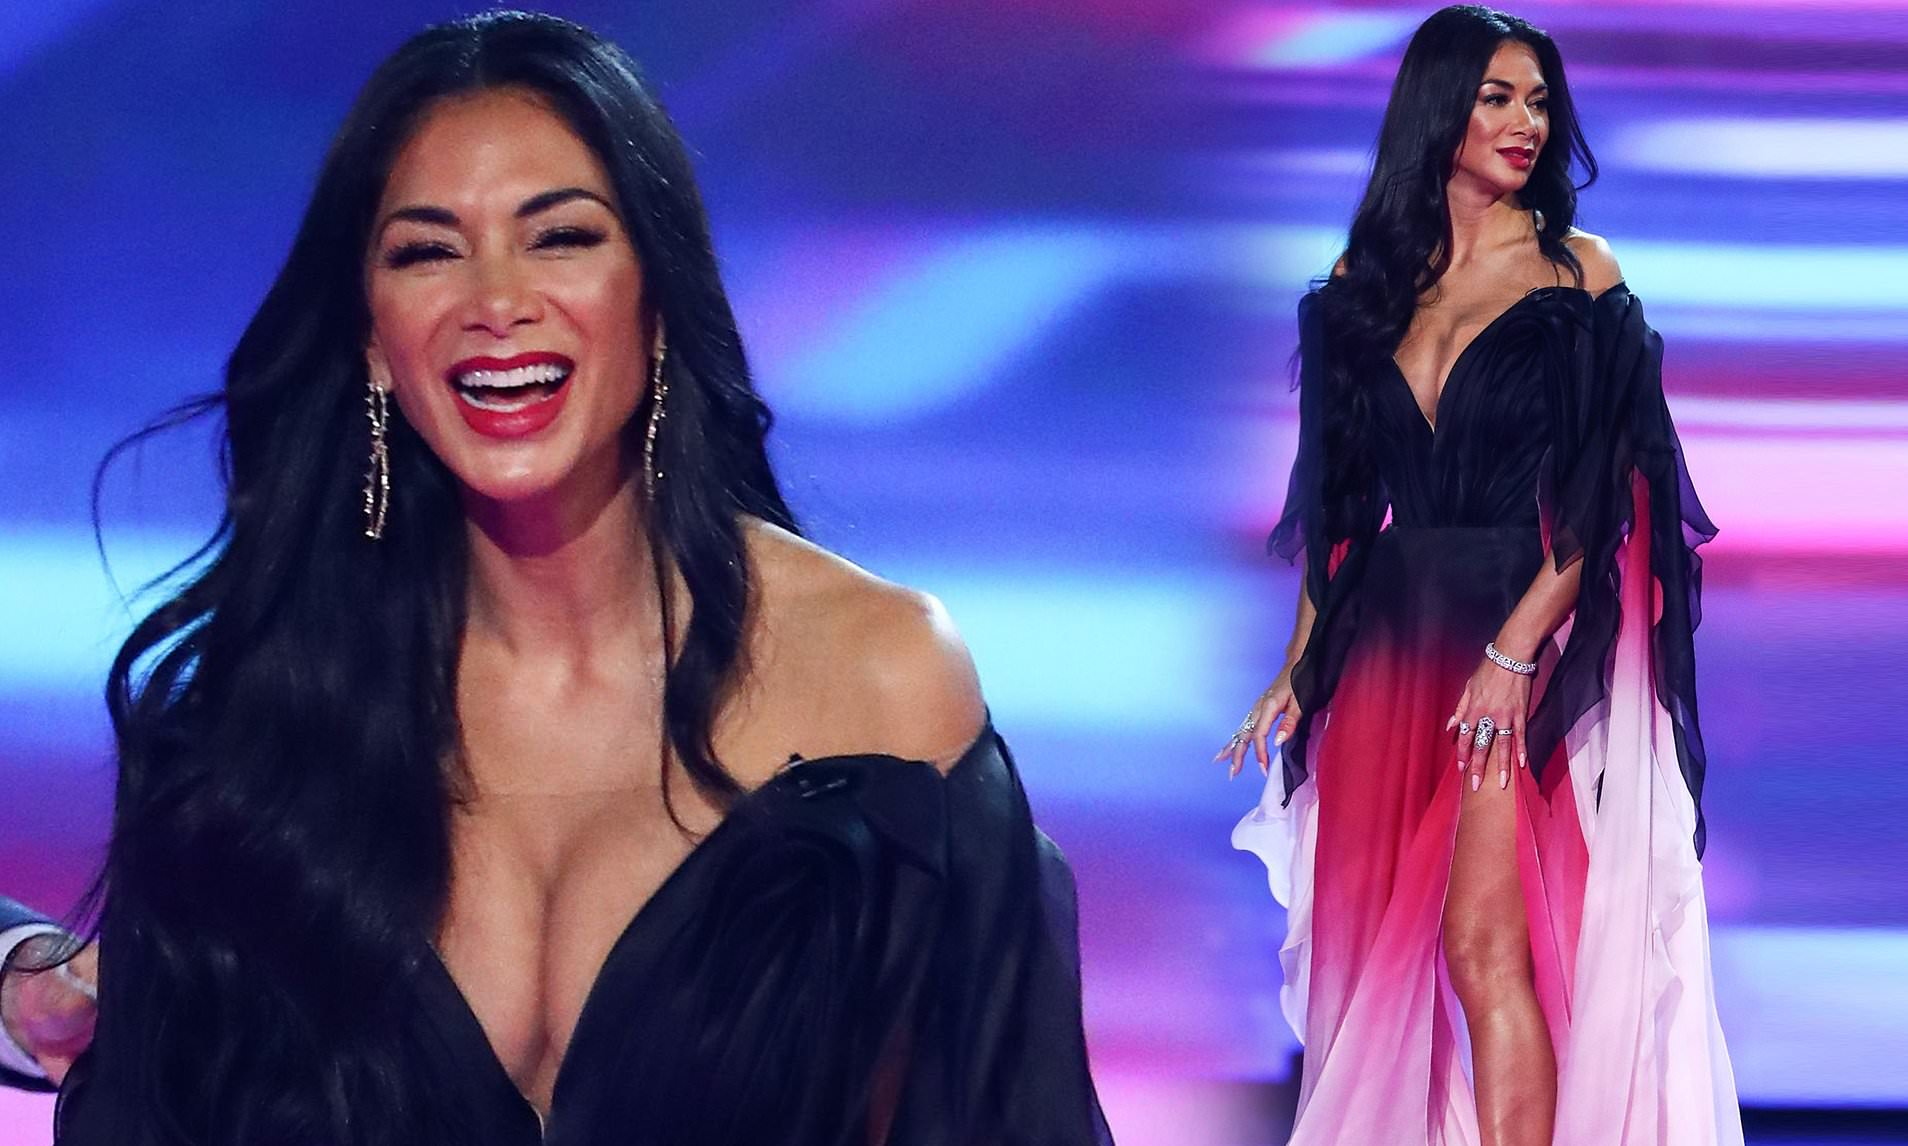 The Turbulent Career of Nicole Scherzinger: Where Is She Now?